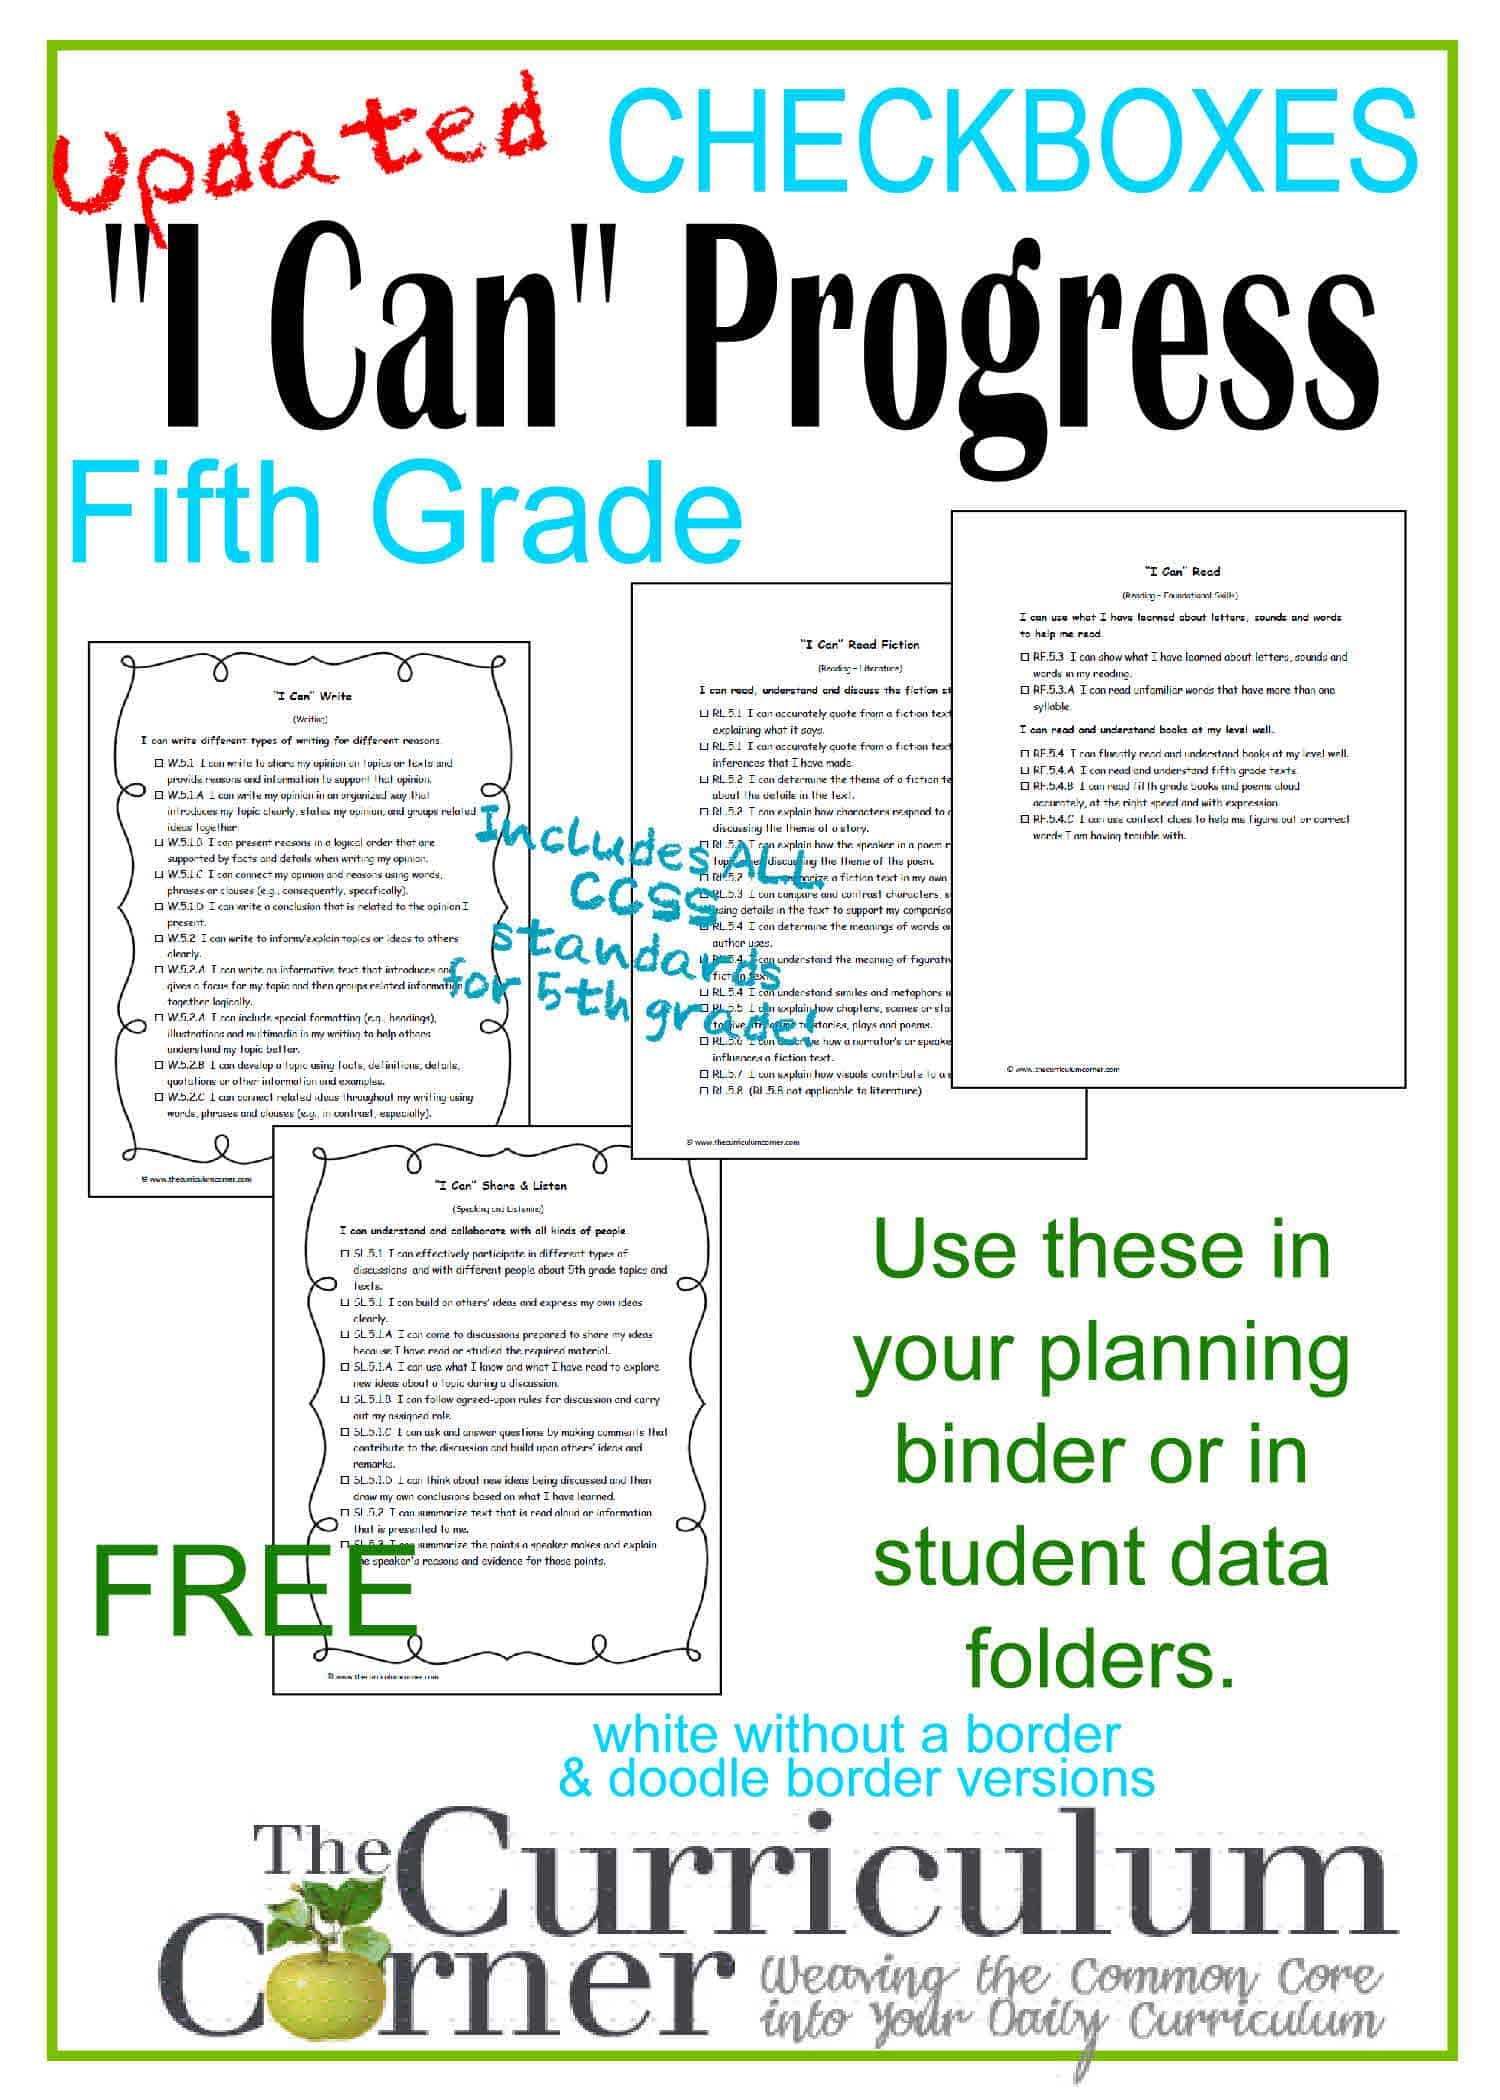 I Can Statements 5th Grade Ccss Progress Checkboxes